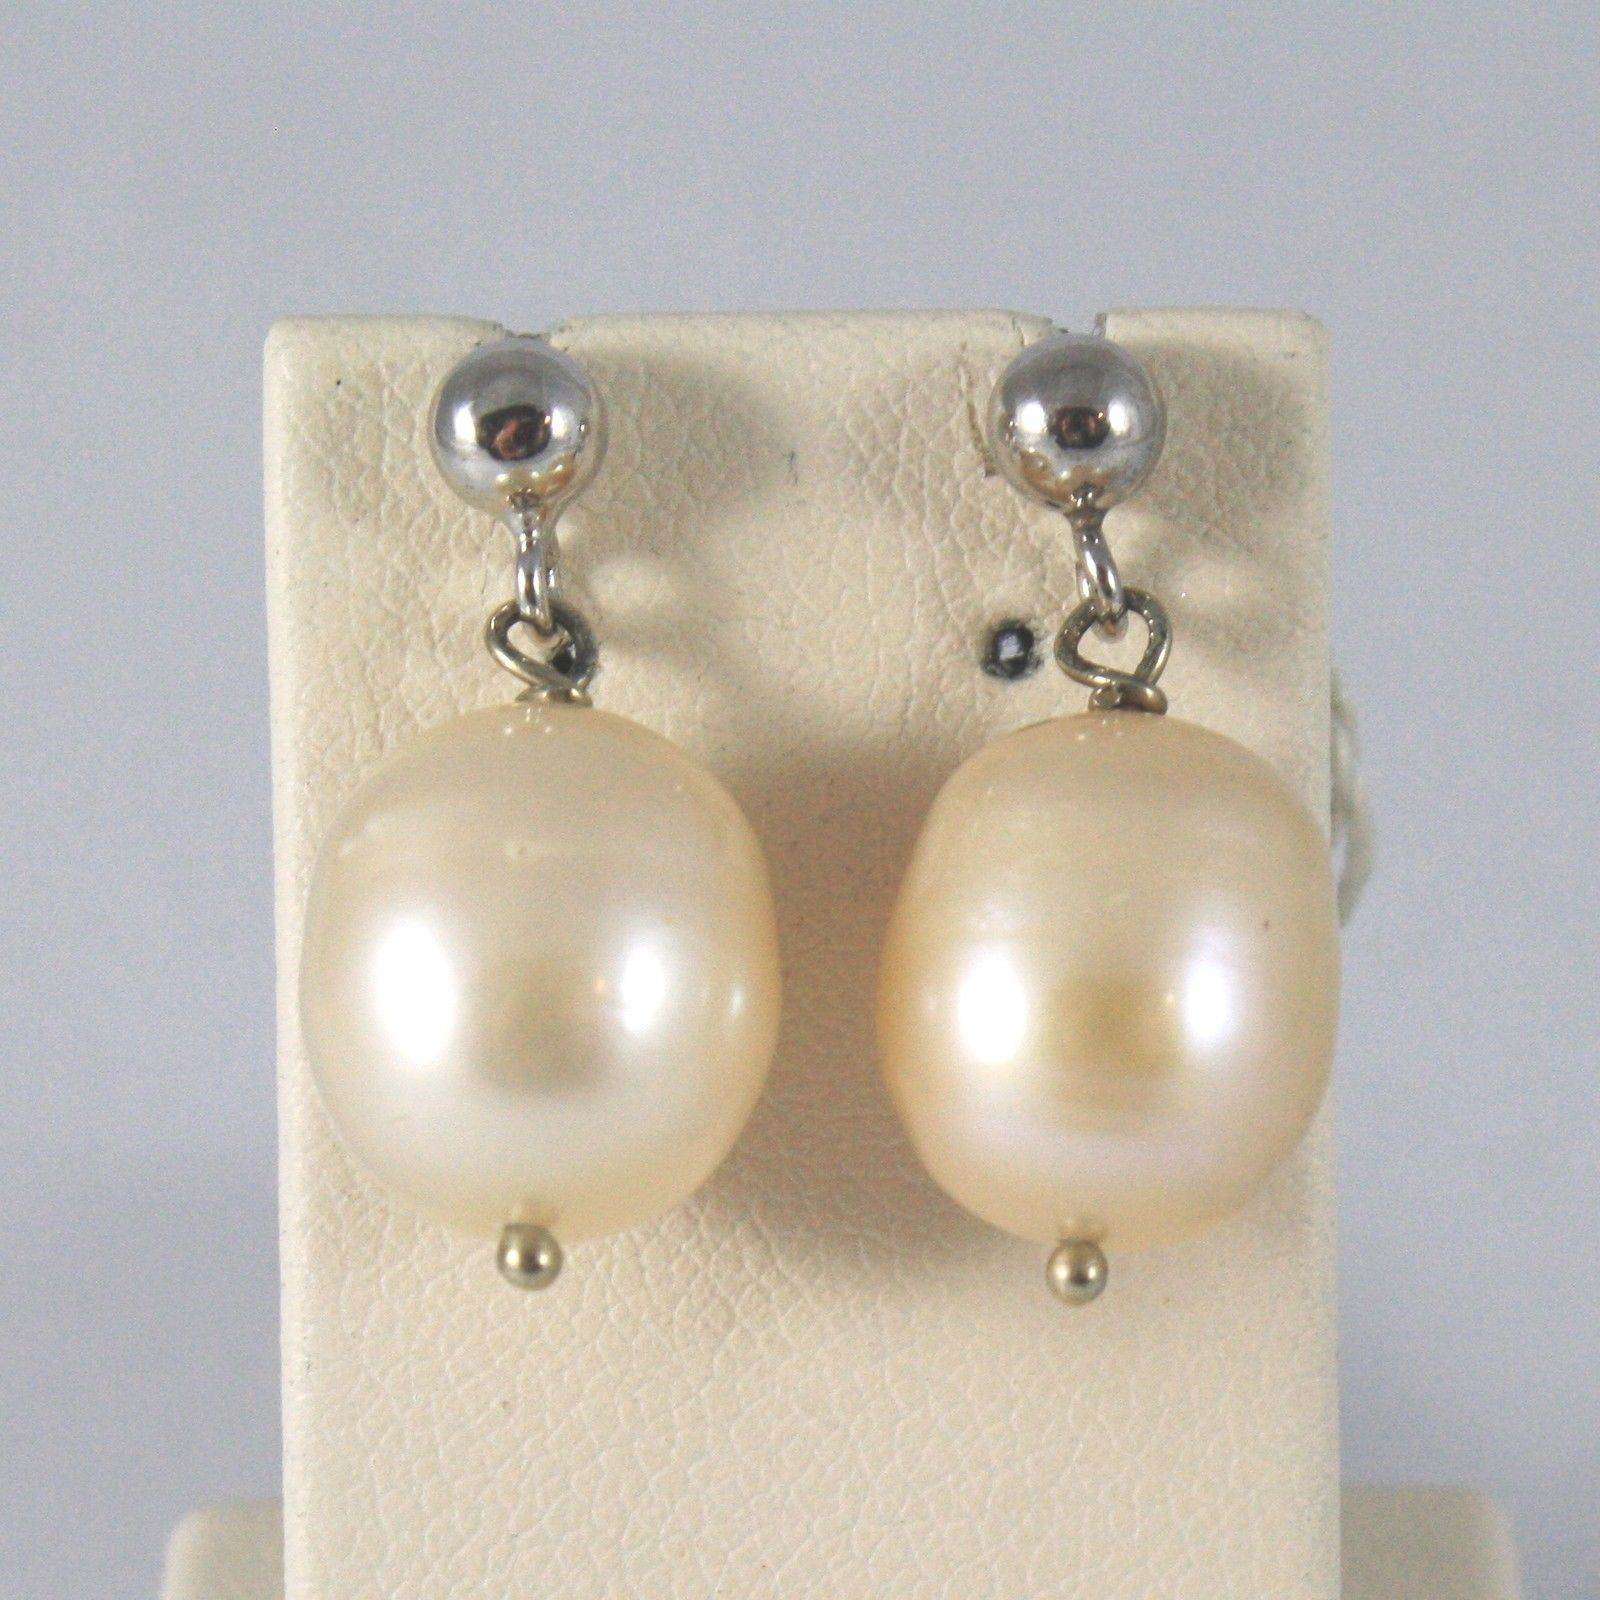 White Gold Earrings 750 18k charms, with pearls peach